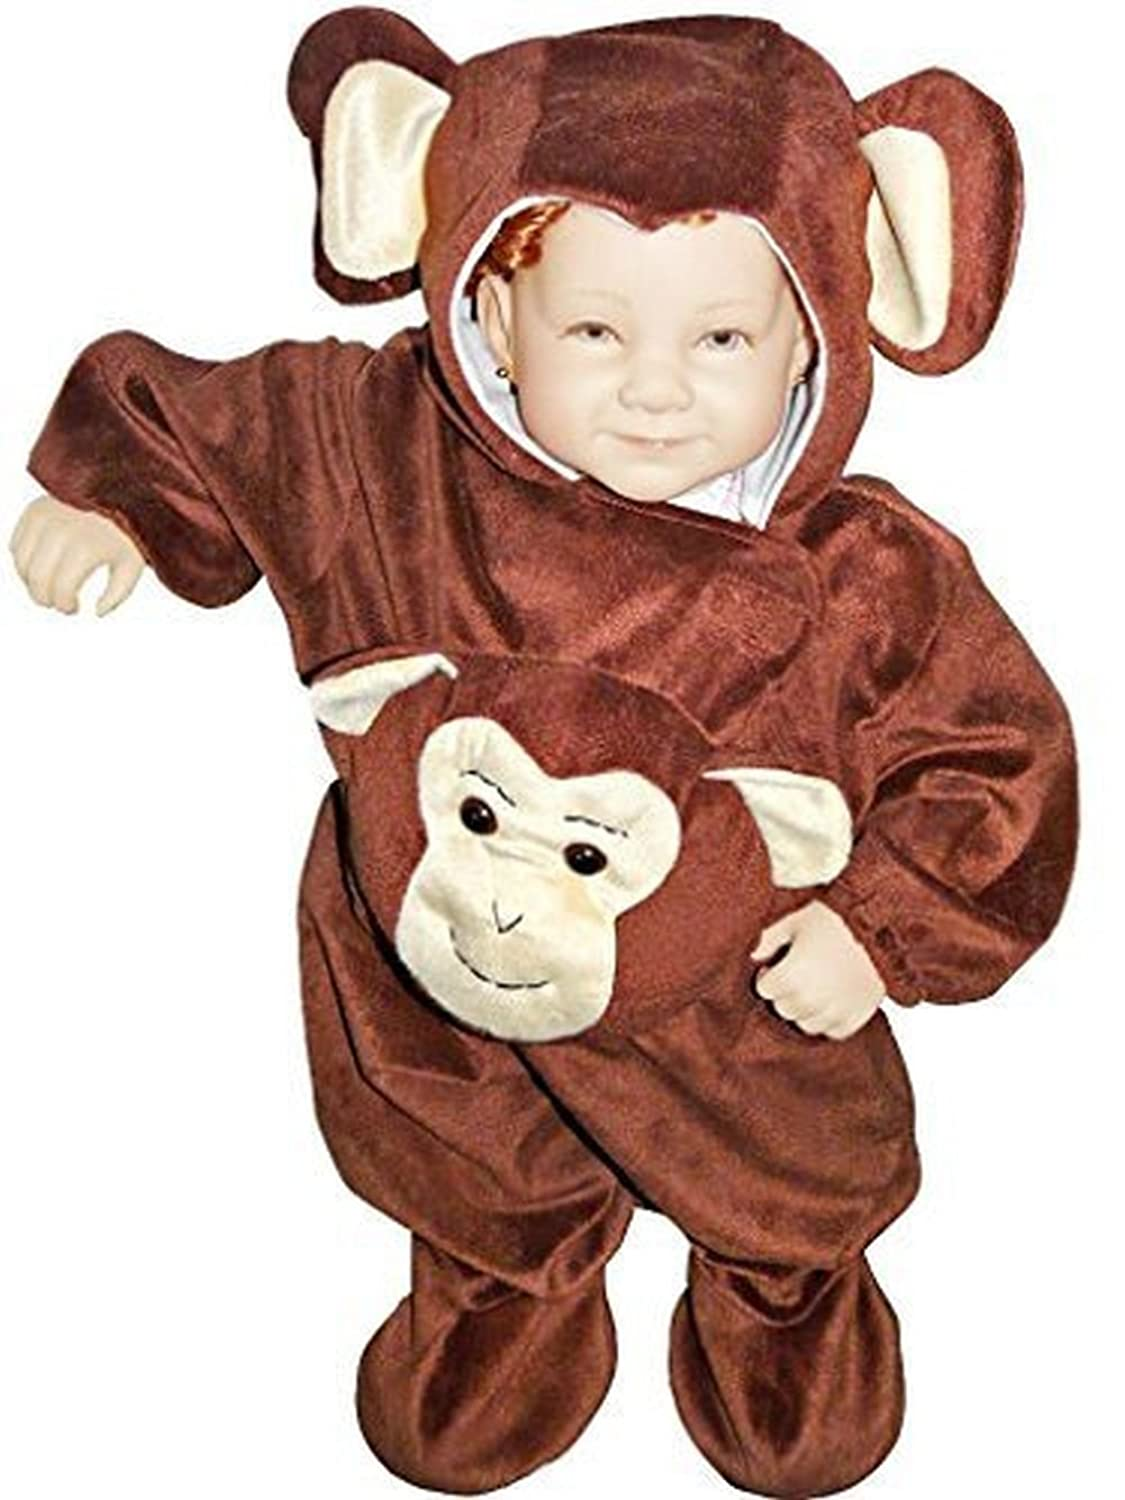 Fantasy World children-s halloween costume-s, girl-s boy-s toddler-s kid-s, F29/F80/F84/J13/J45/J47/Sy18